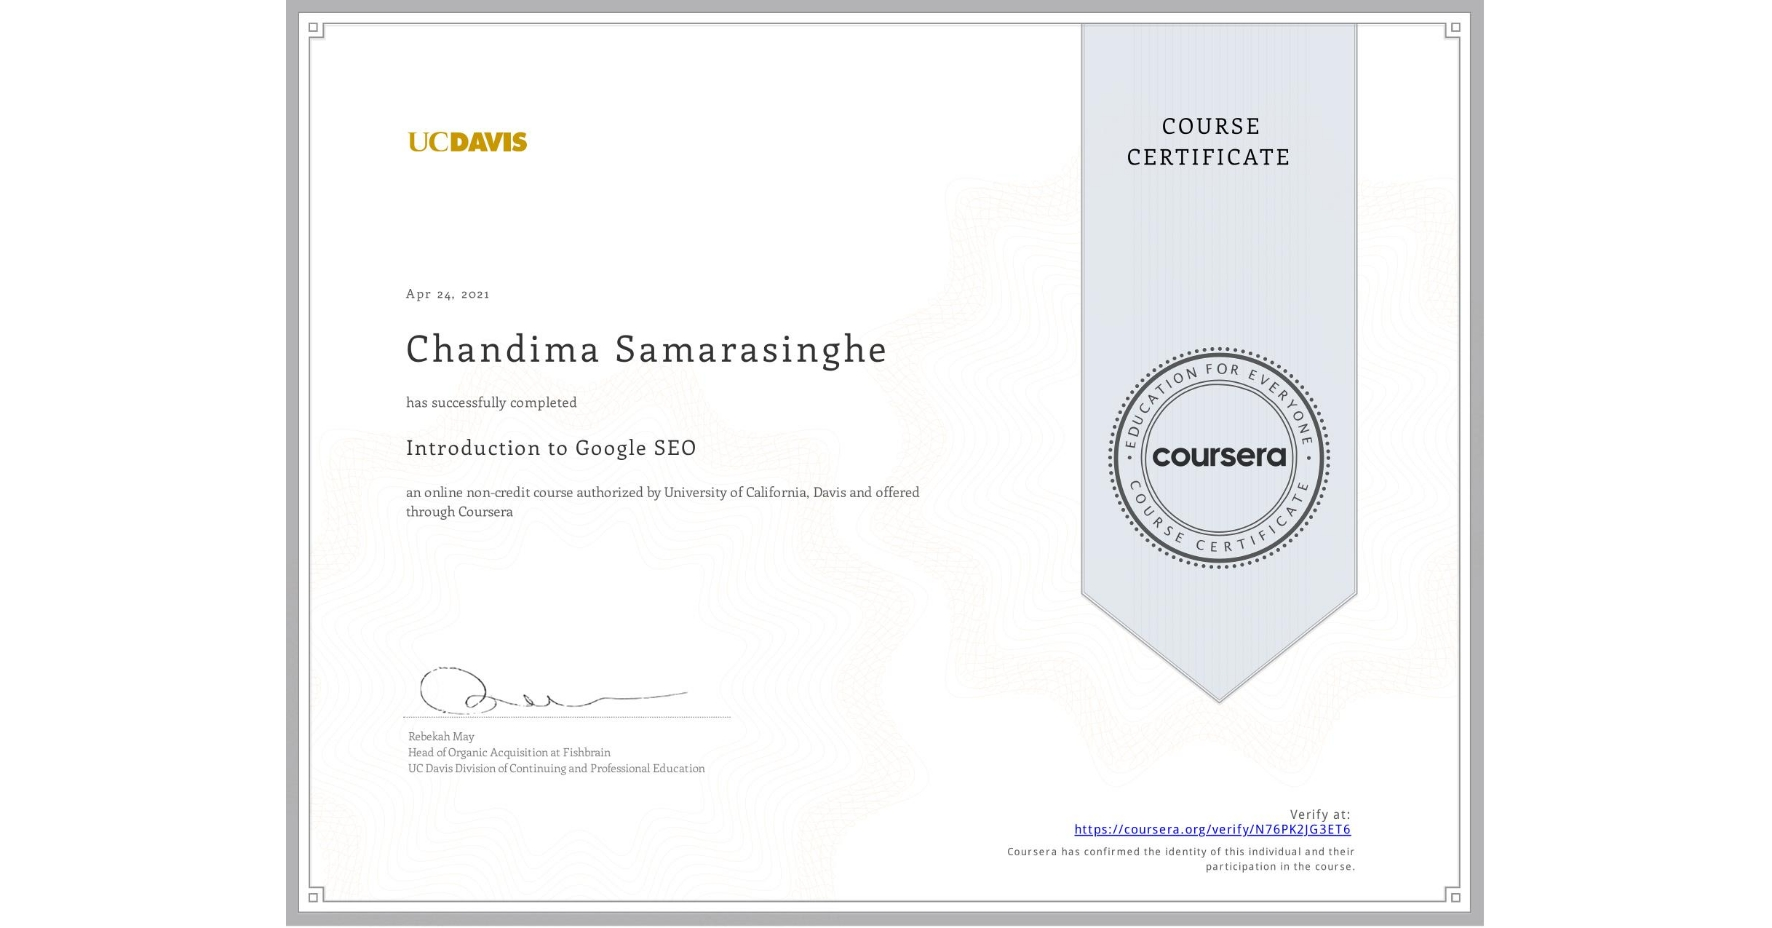 View certificate for Chandima Samarasinghe, Introduction to Google SEO, an online non-credit course authorized by University of California, Davis and offered through Coursera